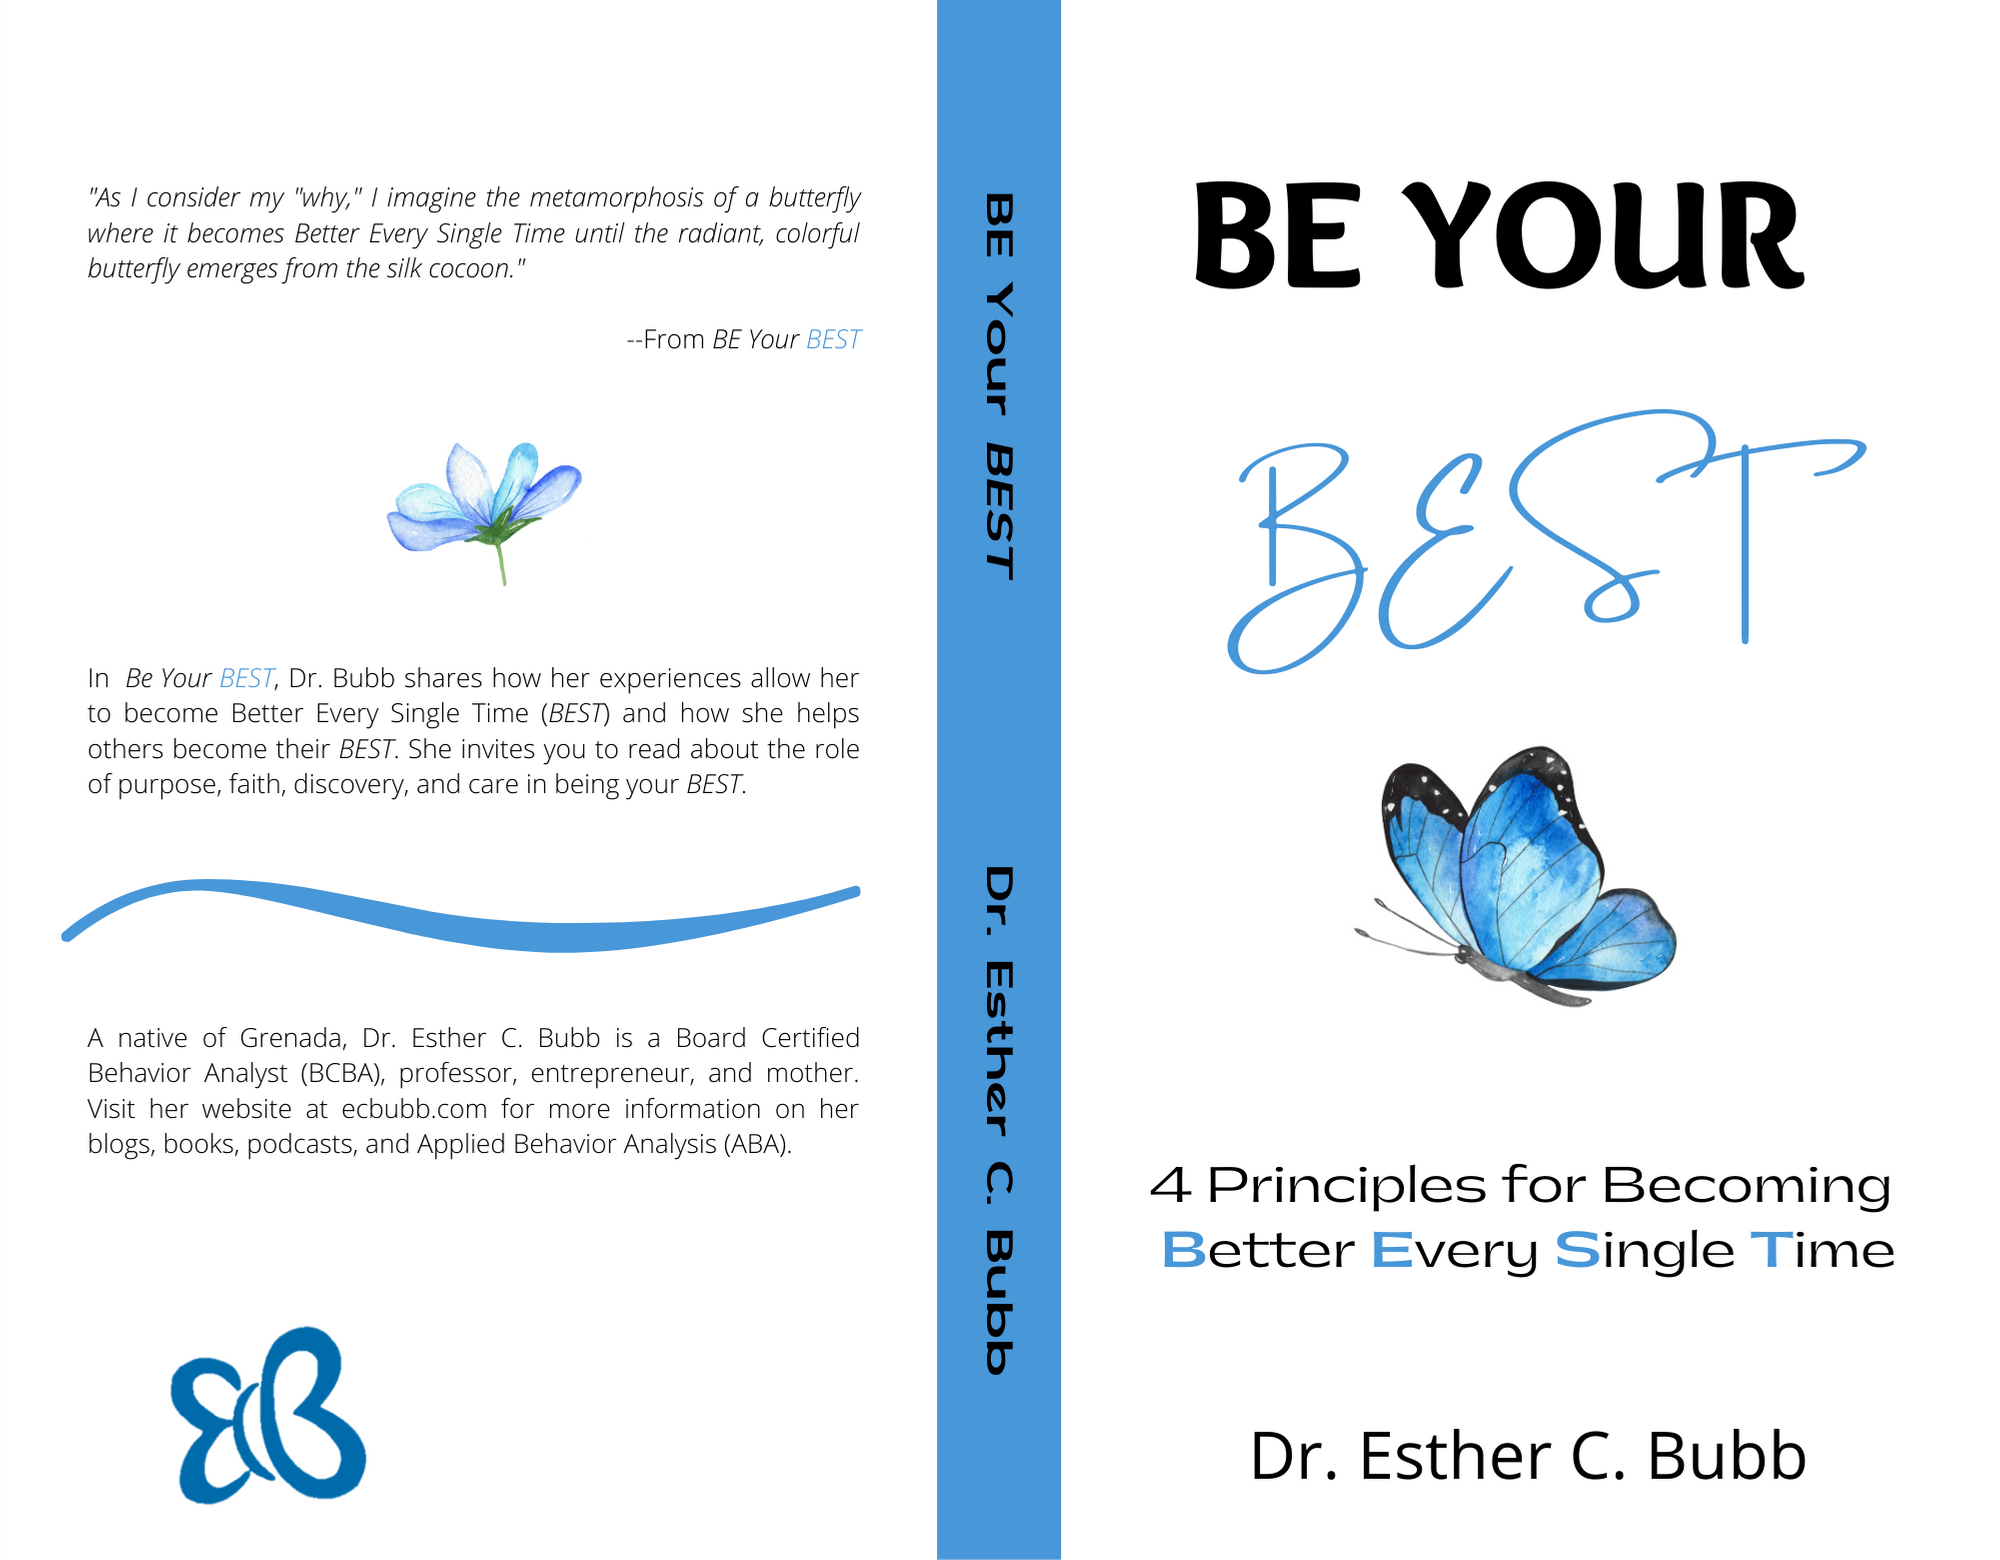 Episode 2: Be Your BEST: 4 Principles for Becoming Better Every Single Time